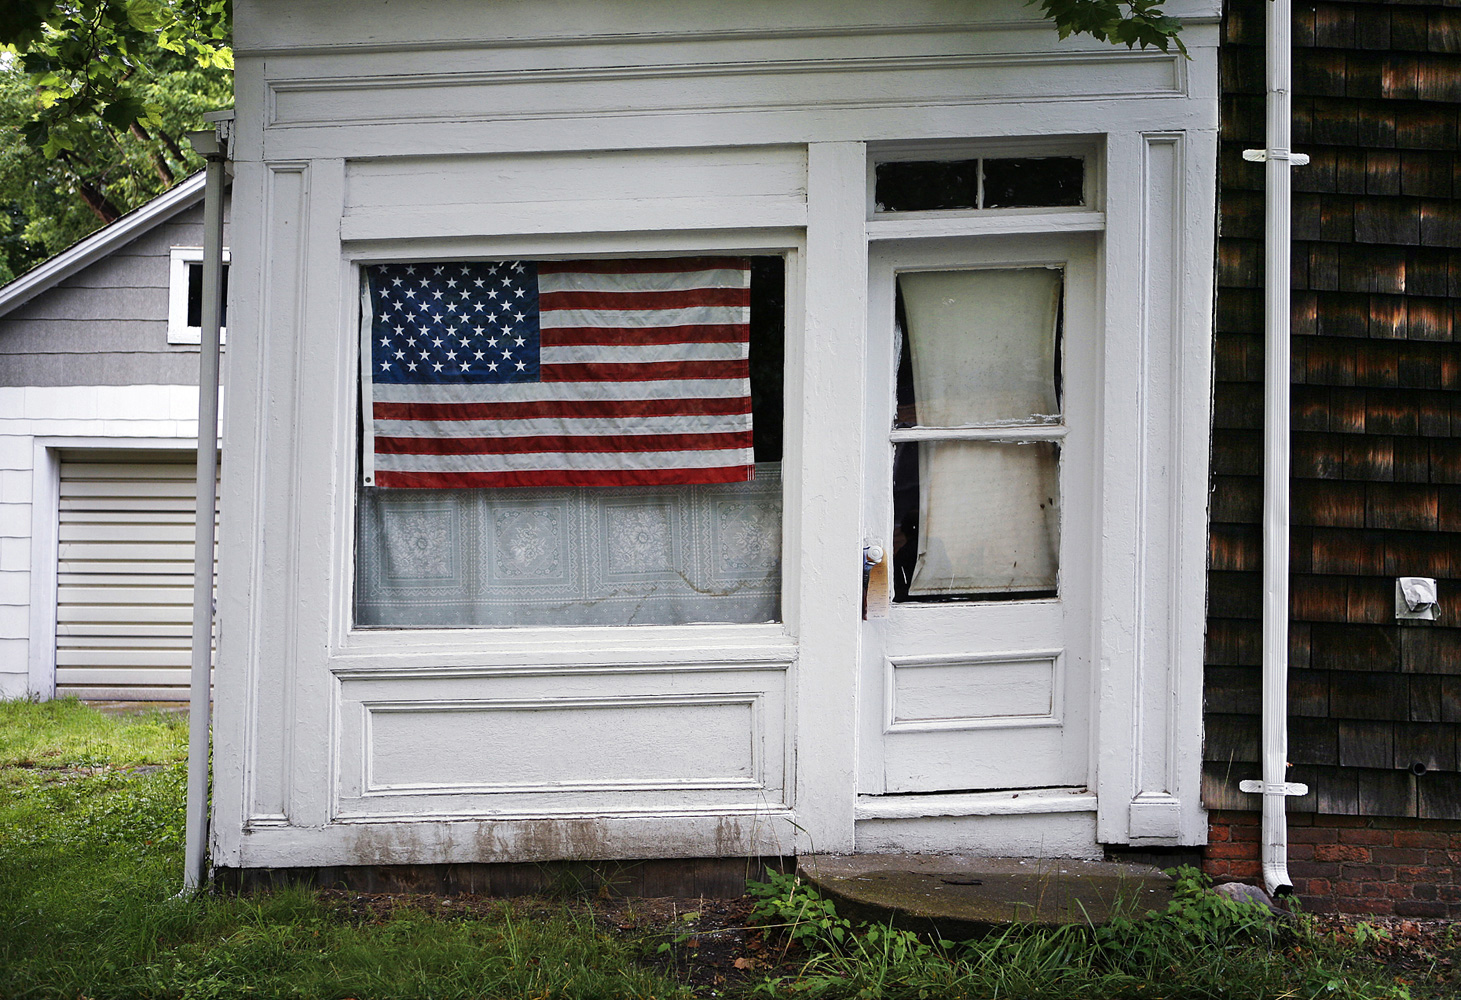 Landscape Photography new york home USA flag in window